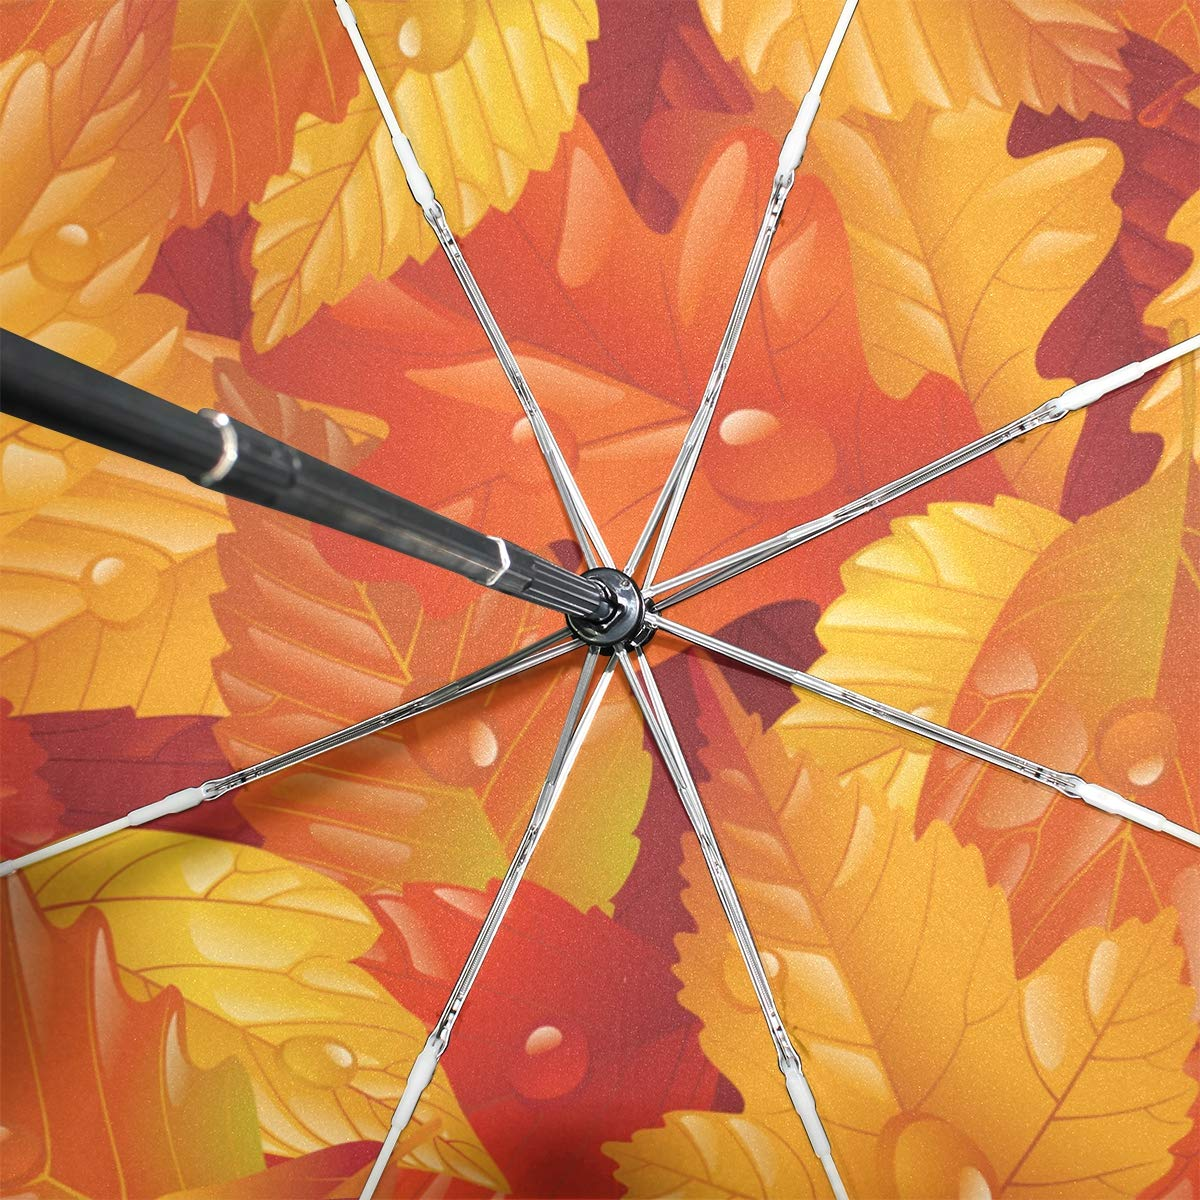 3bea96541aa0 Amazon.com : Senuu Golden Memory Leaf Umbrella Large Travel Auto ...